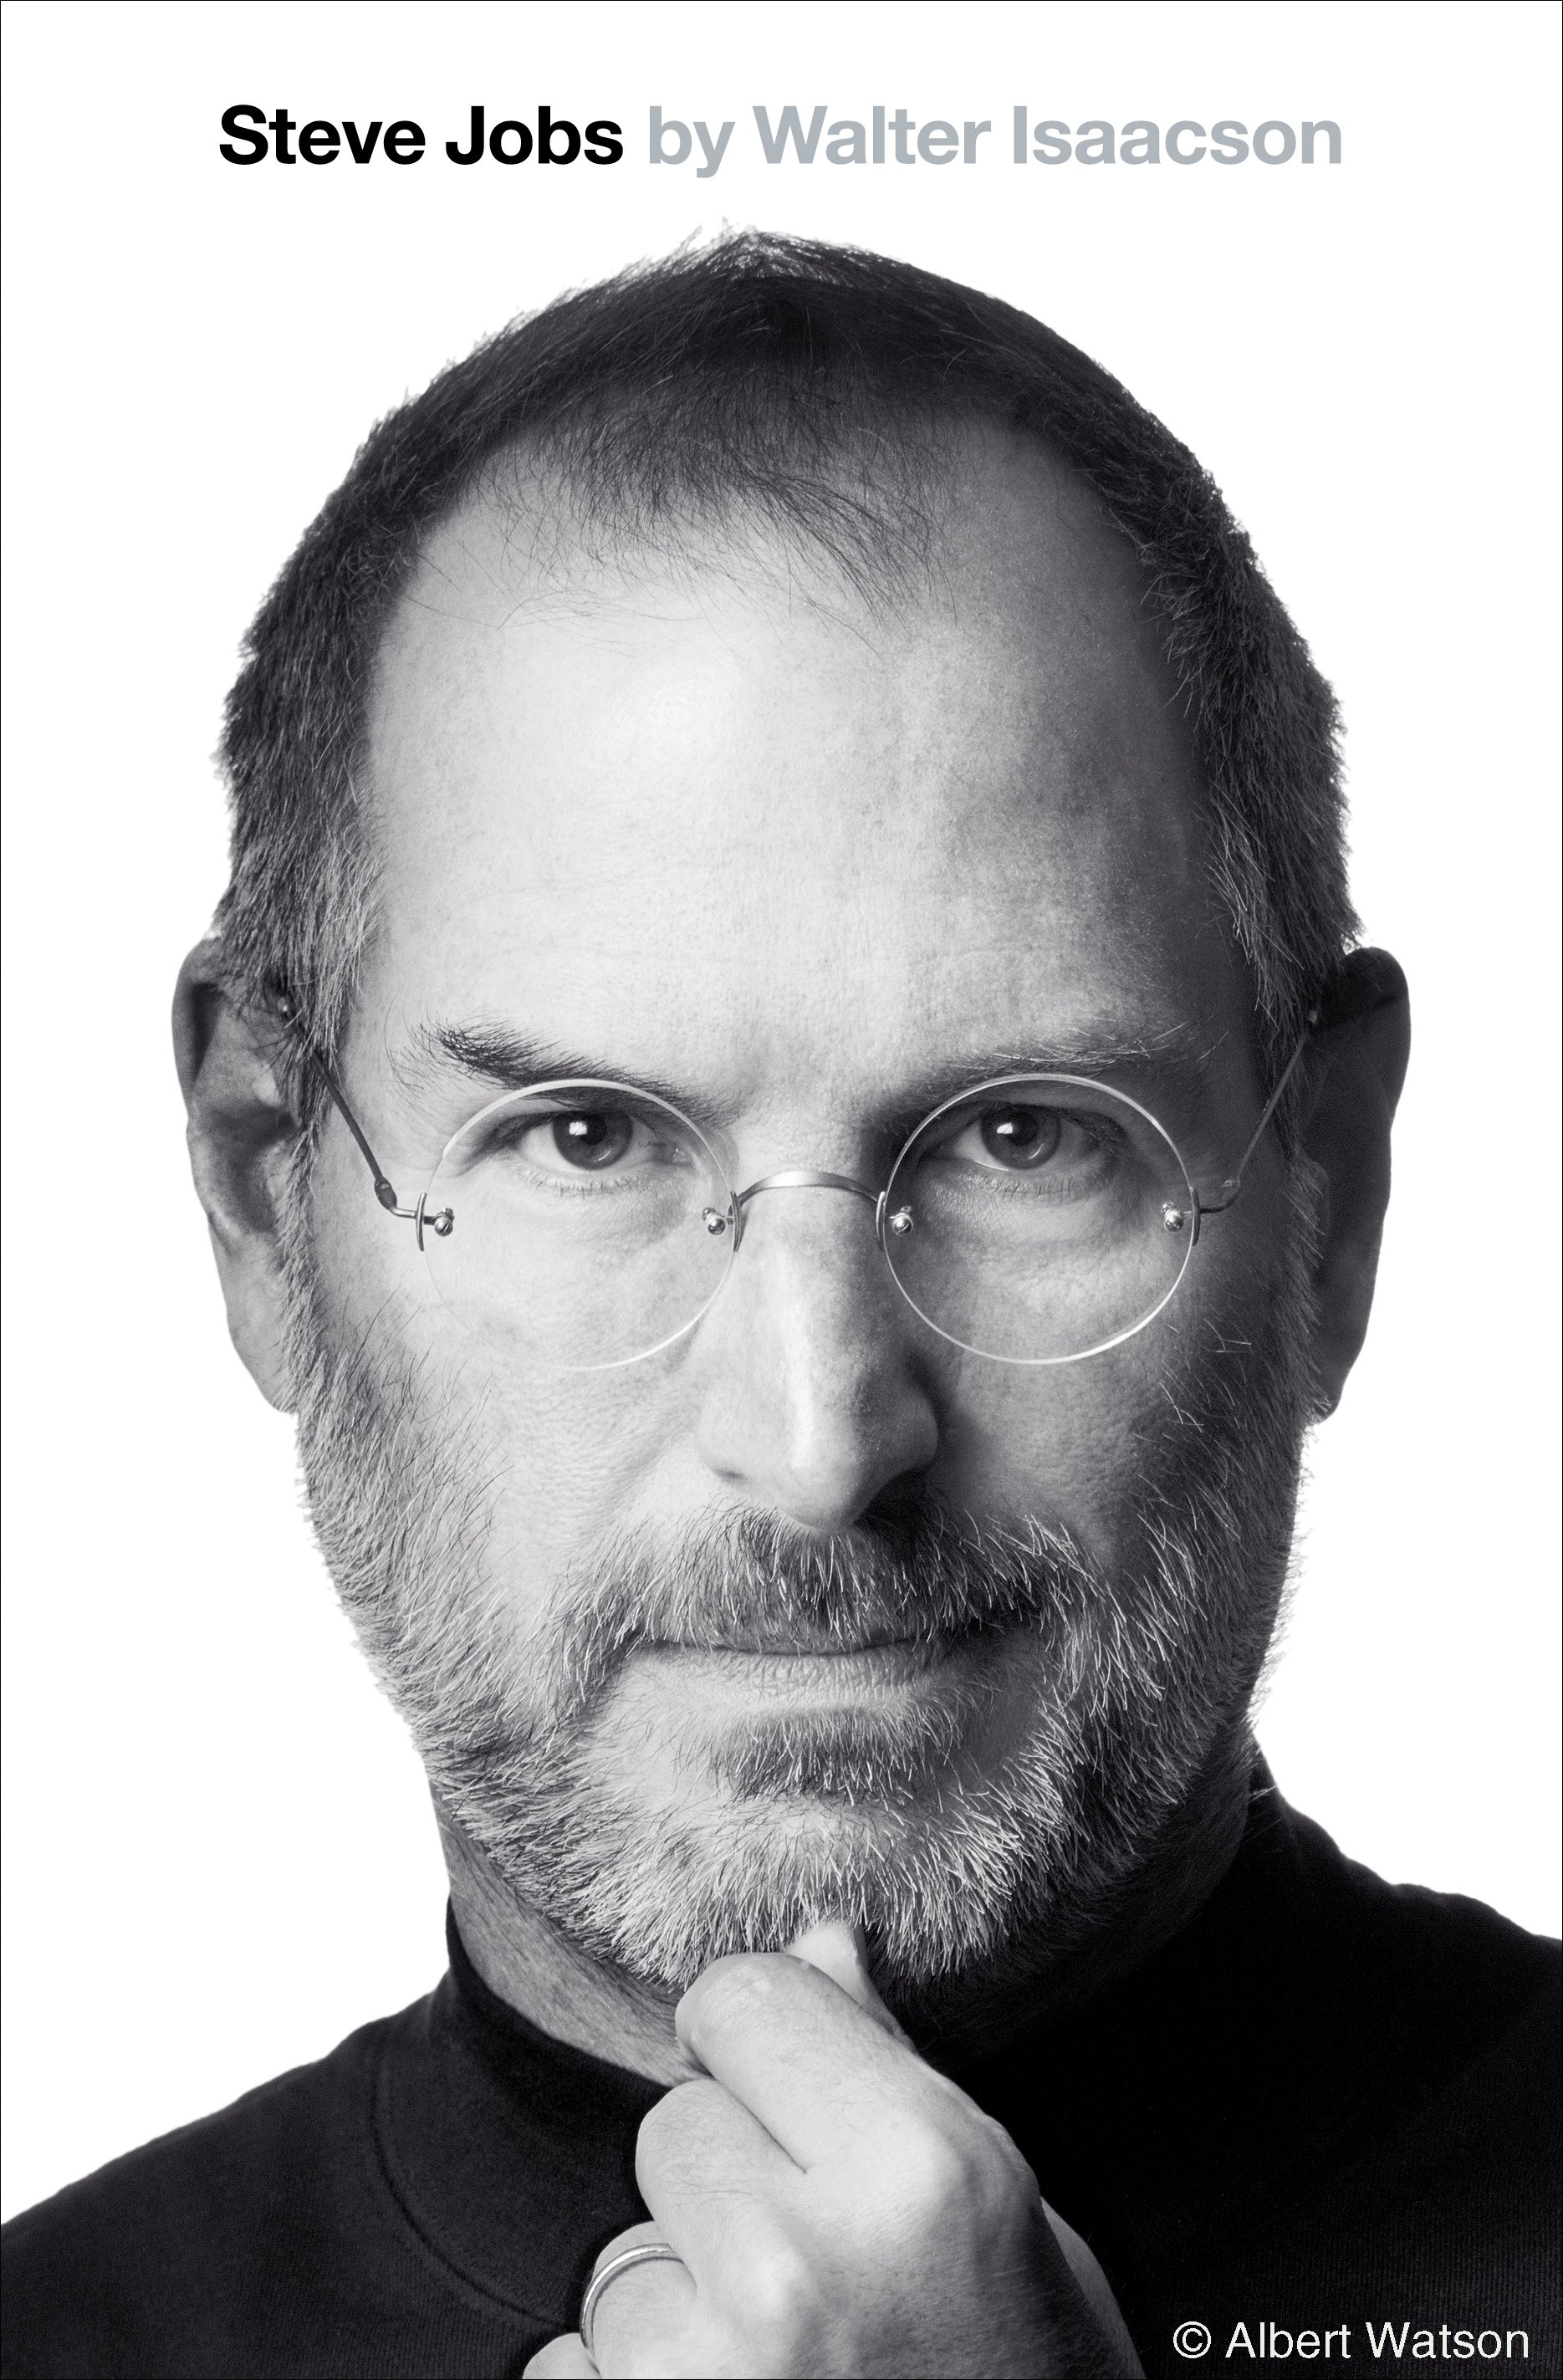 Steve-Jobs-Cover-with-Credit-embedded